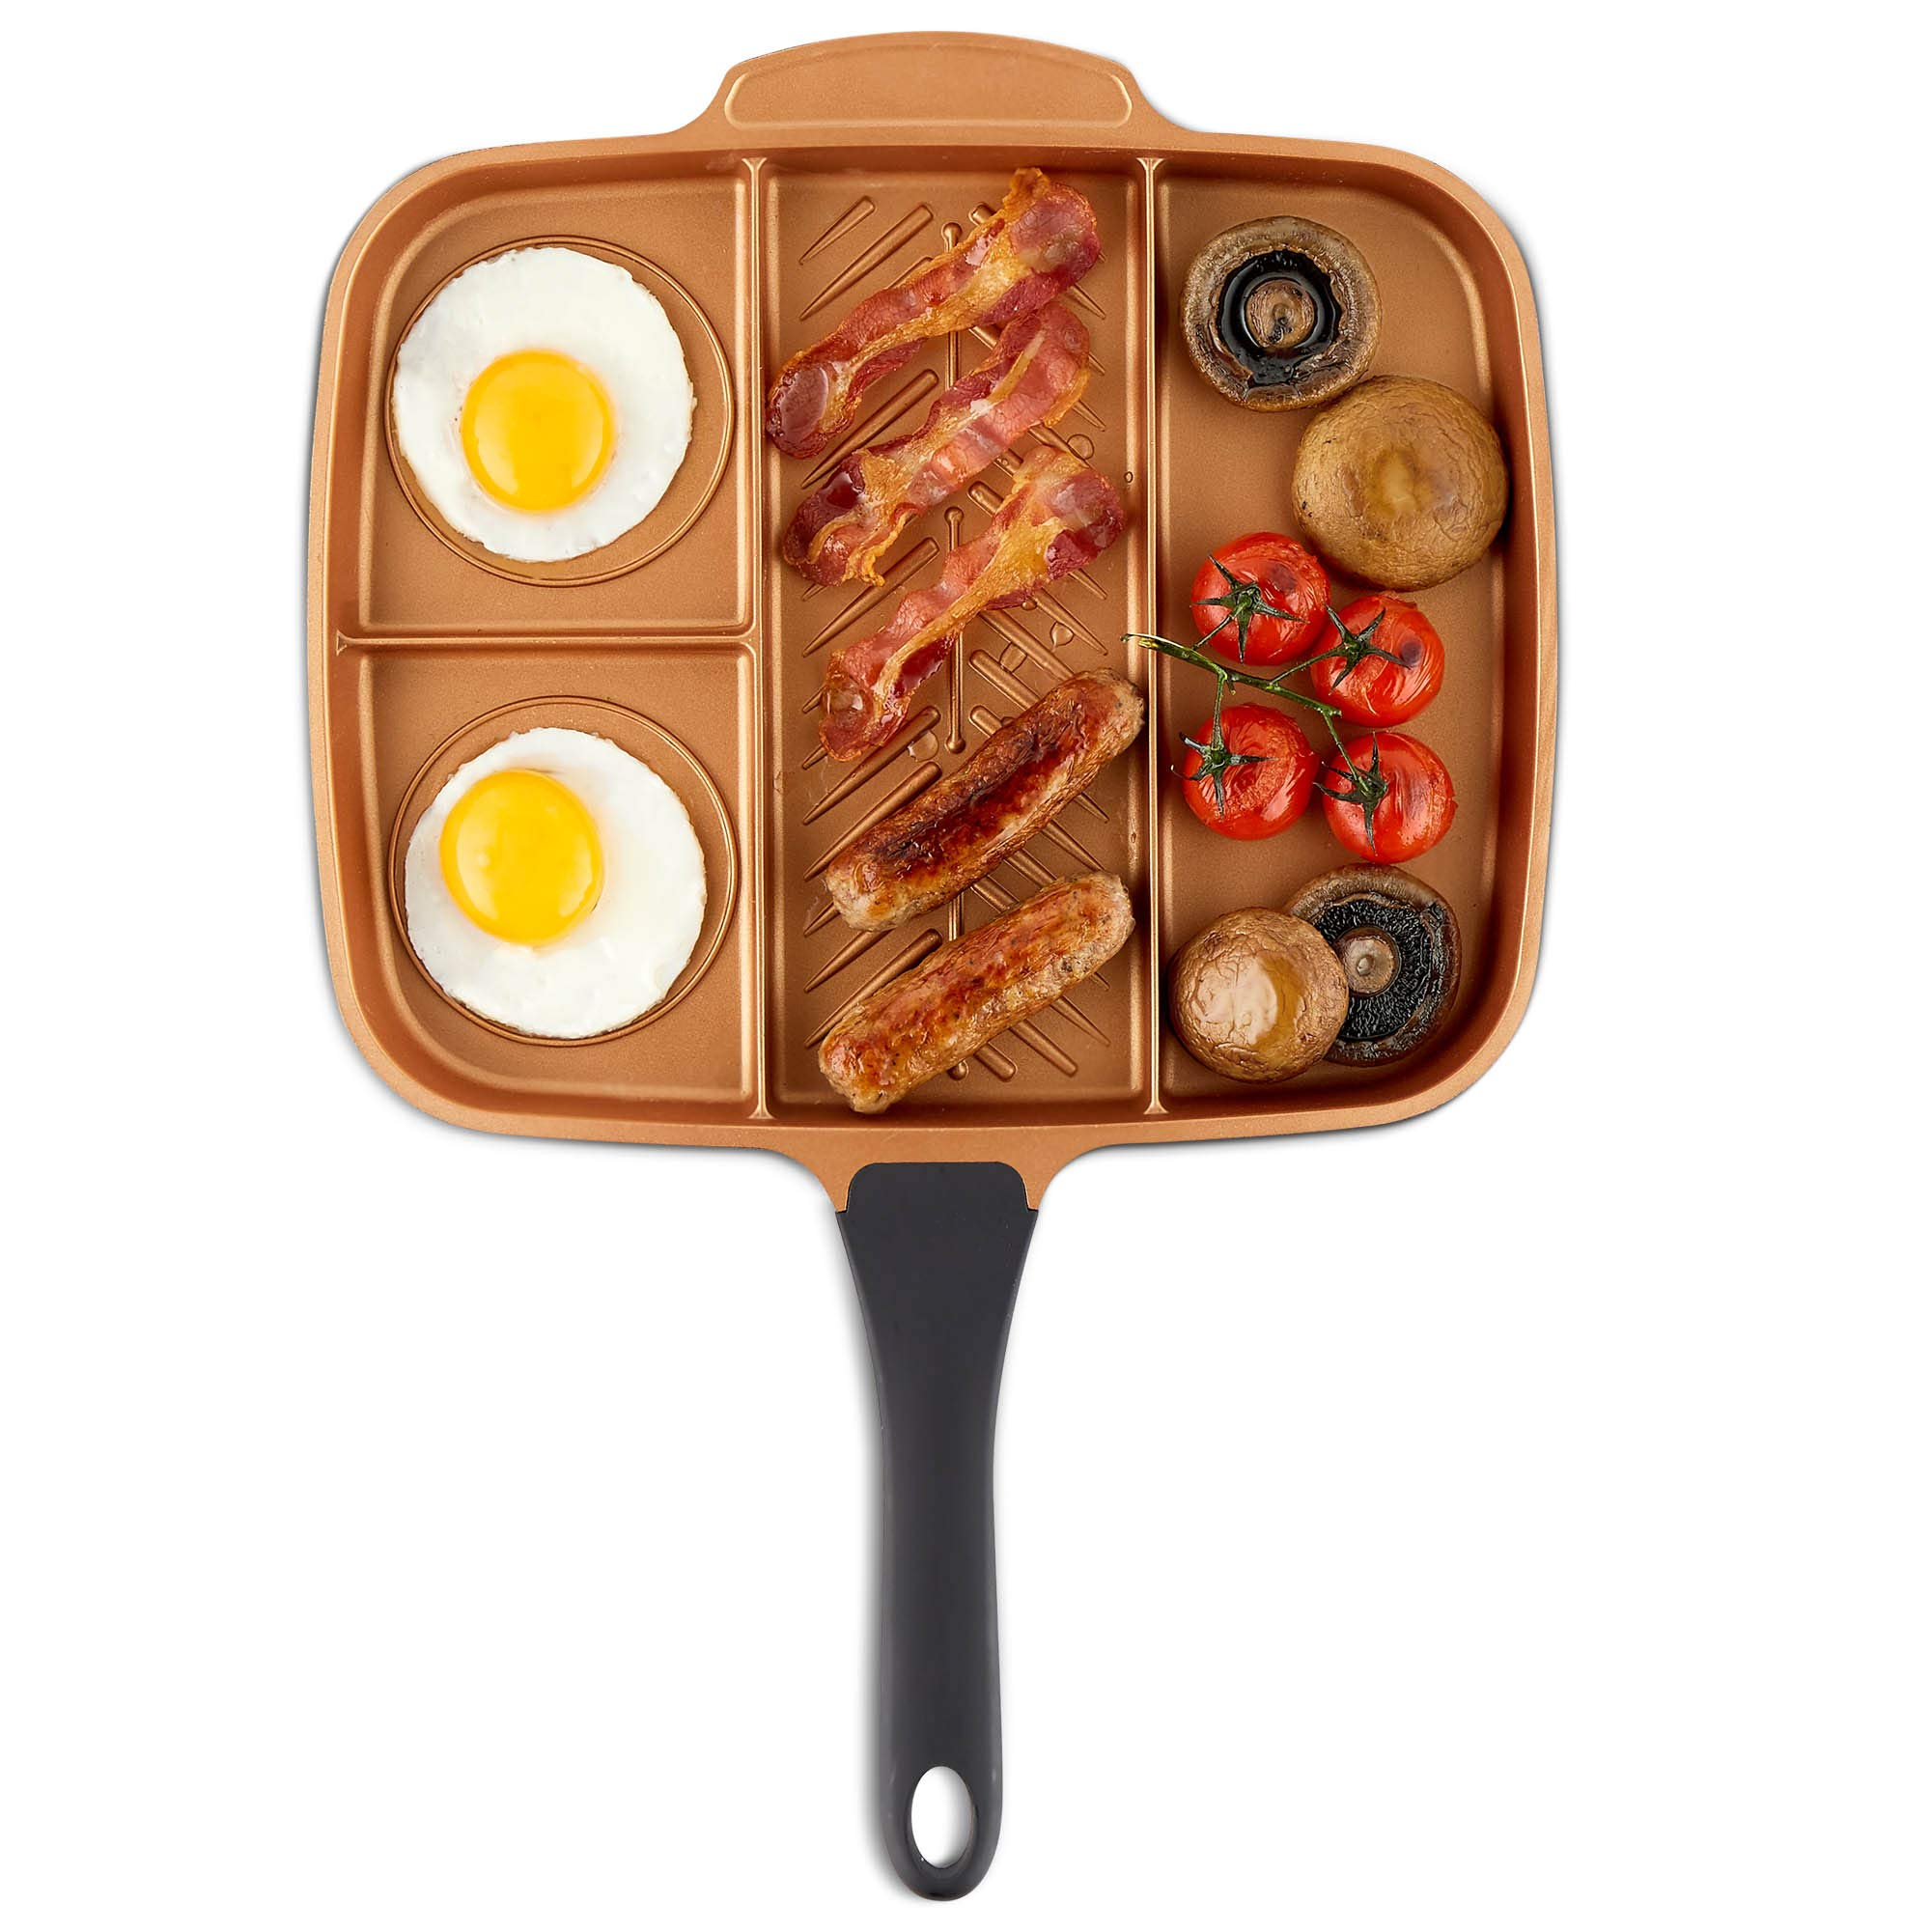 VonShef Grill Pan Non Stick Aluminum, Easy Clean Griddle With Copper Colored Interior and Stainless Steel Handle, Induction Hob Ready, 11 Inches Diameter (11'' Diameter (4-in1 Divided Pan)) by VonShef